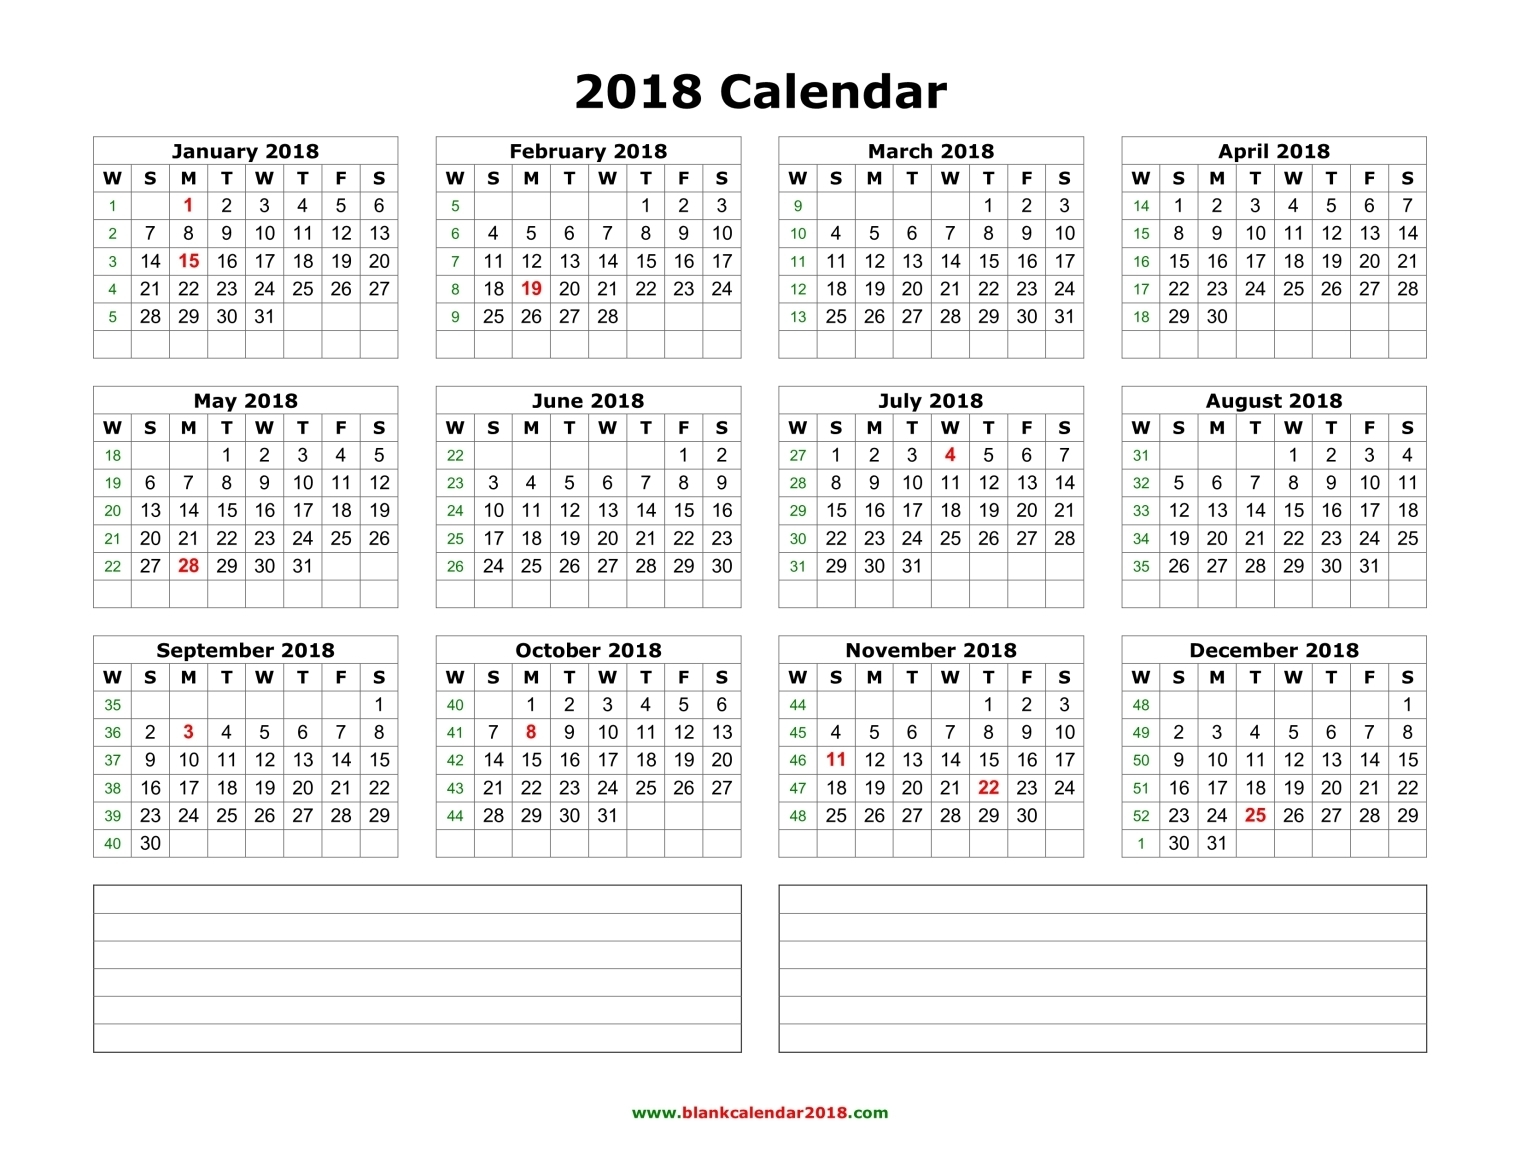 Blank calendar 2018 blank calendar 2018 with notes landscape pronofoot35fo Images